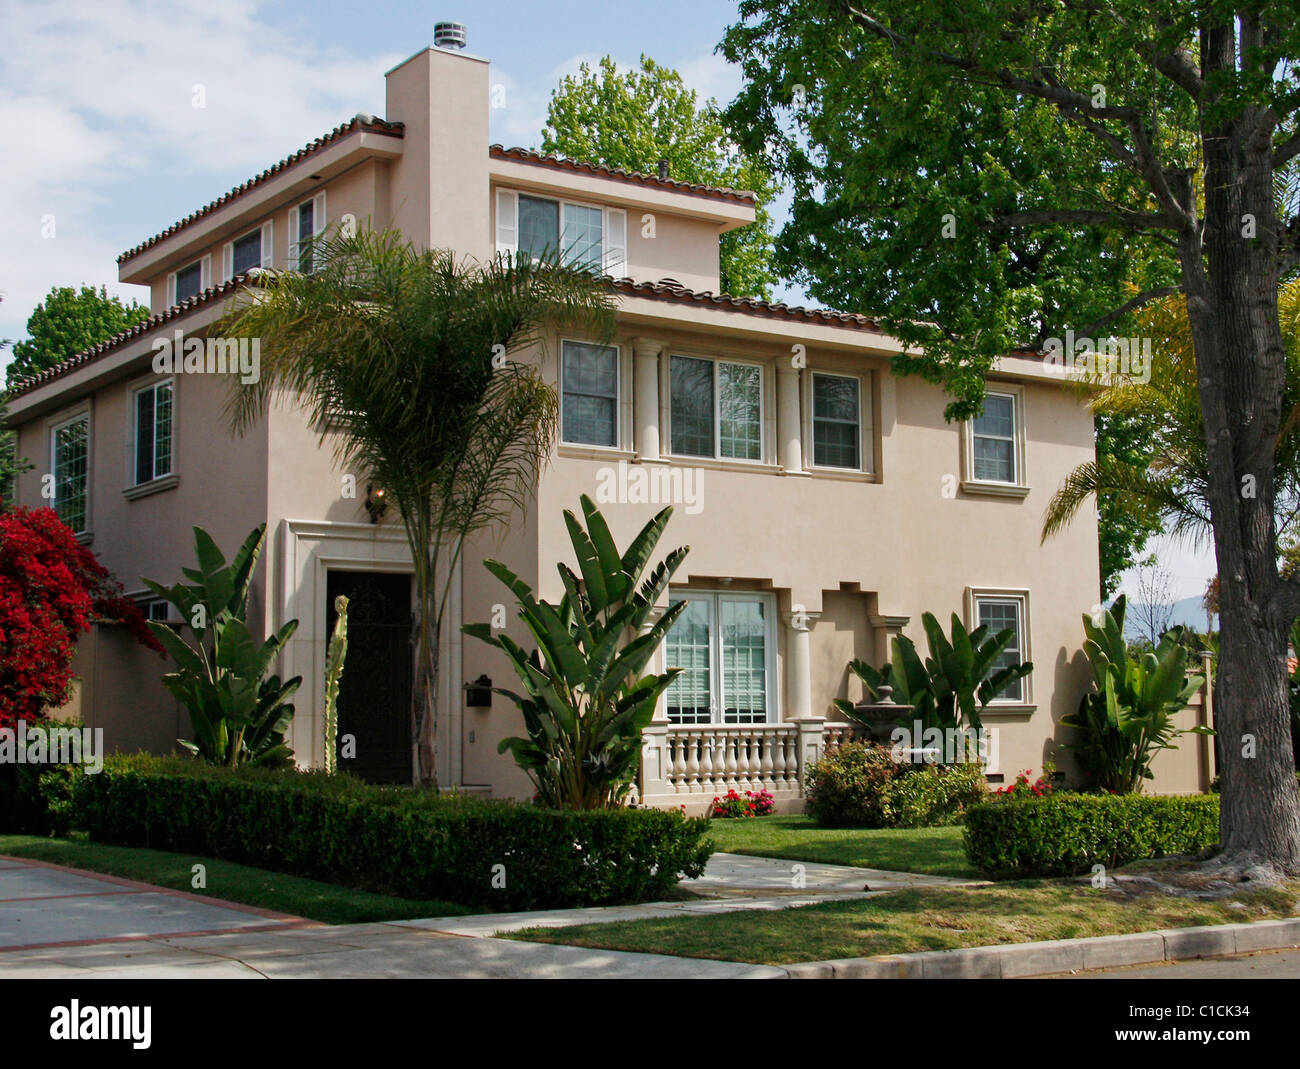 This Is The New House Of Disney Star Demi Lovato In The Toluca Lake Stock Photo Alamy